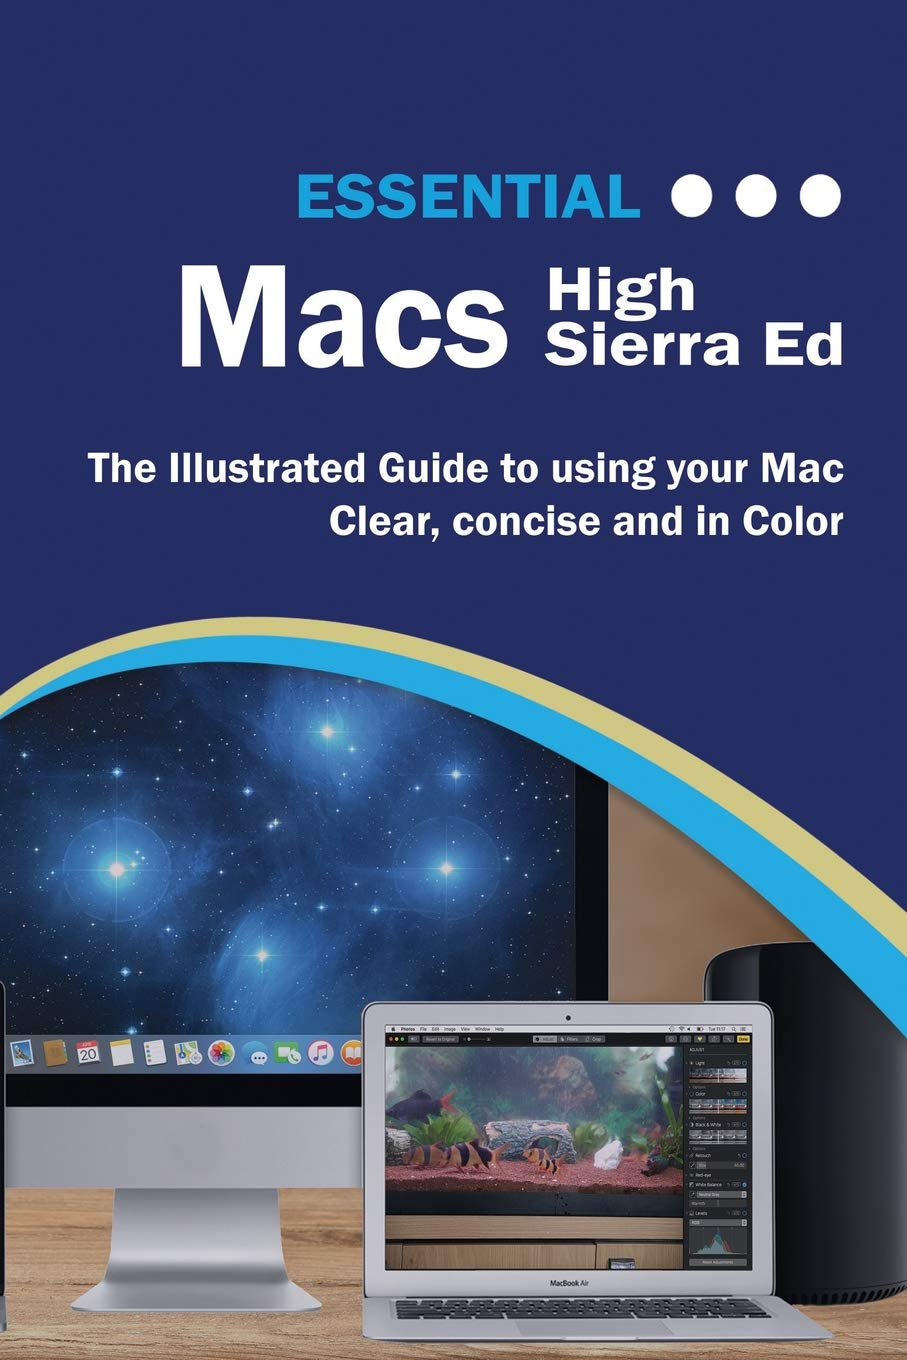 Essential Macs High Sierra Edition: The Illustrated Guide to Using your Mac Computer Essentials: Amazon.es: Wilson, Kevin: Libros en idiomas extranjeros